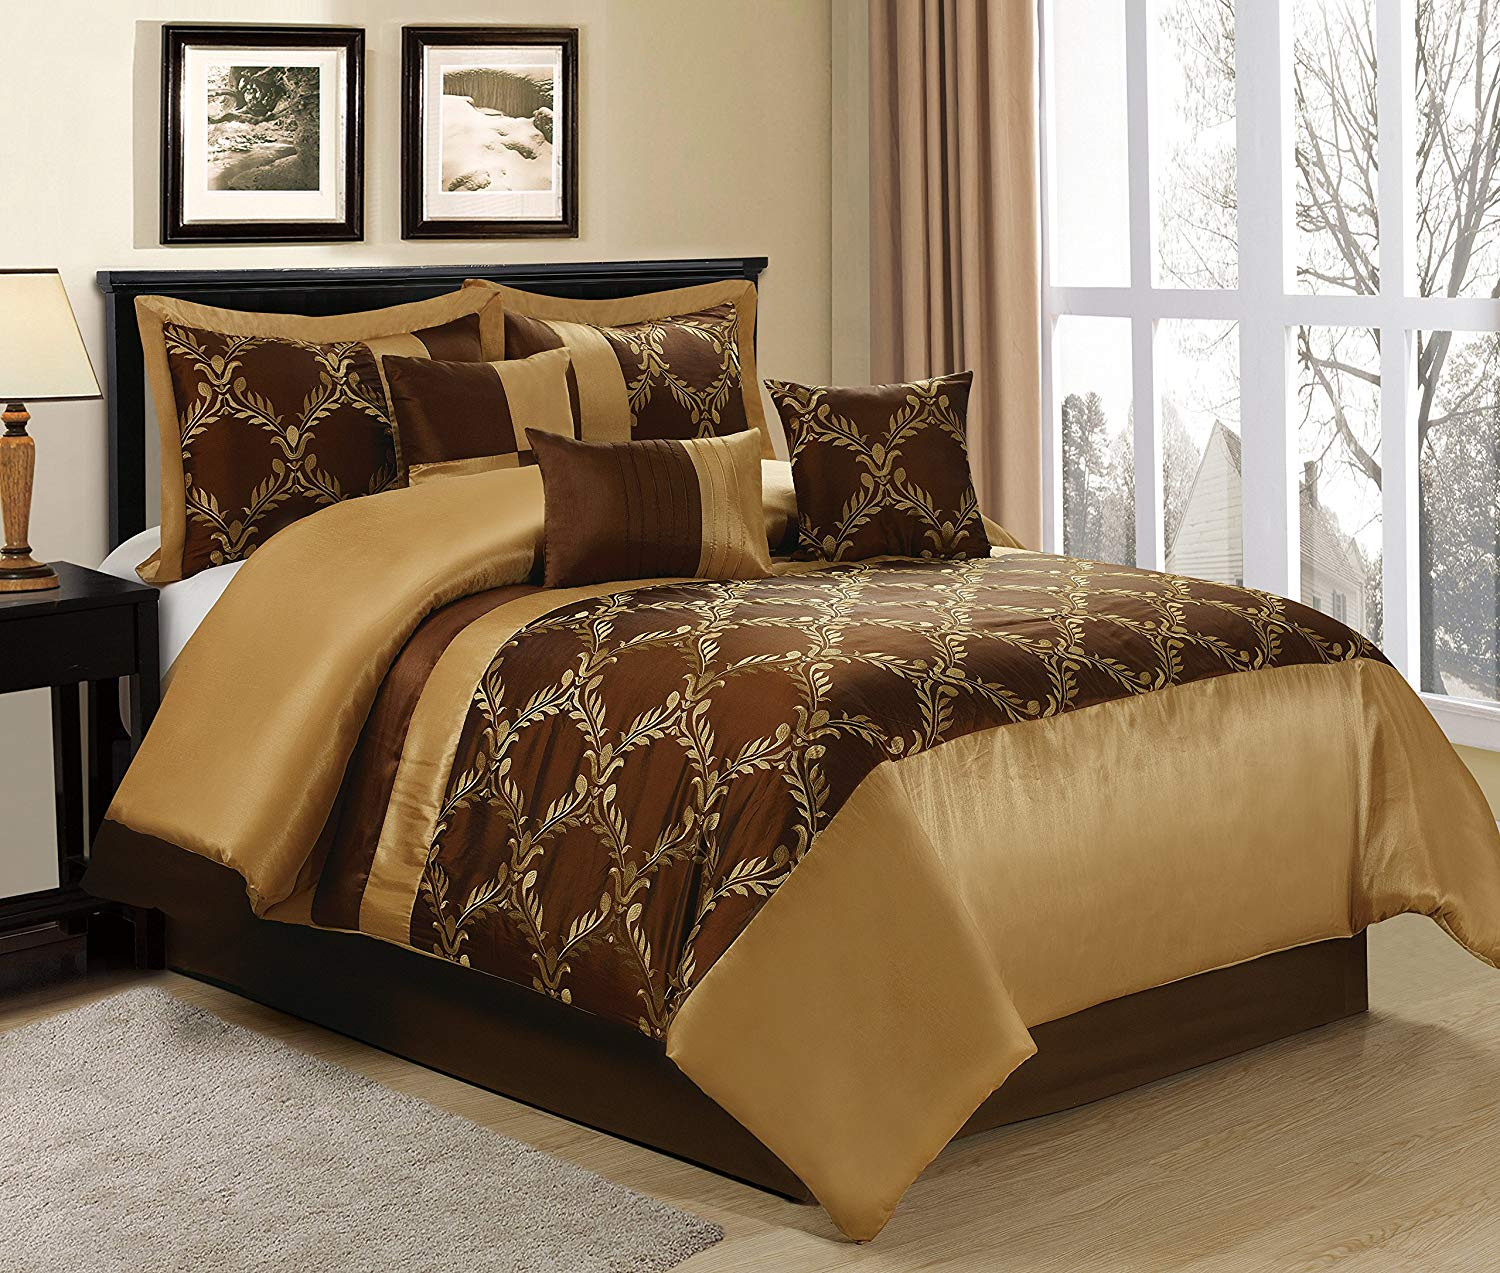 Hig 7 Piece Comforter Set King Chocolate And Gold Taffeta Fabric Embroideried Claremont Bed In A Bag King Size Smooth And Good Gloss 1 Comforter 2 Shams 3 Decorative Pillows 1 Bedskirt Walmart Com Walmart Com